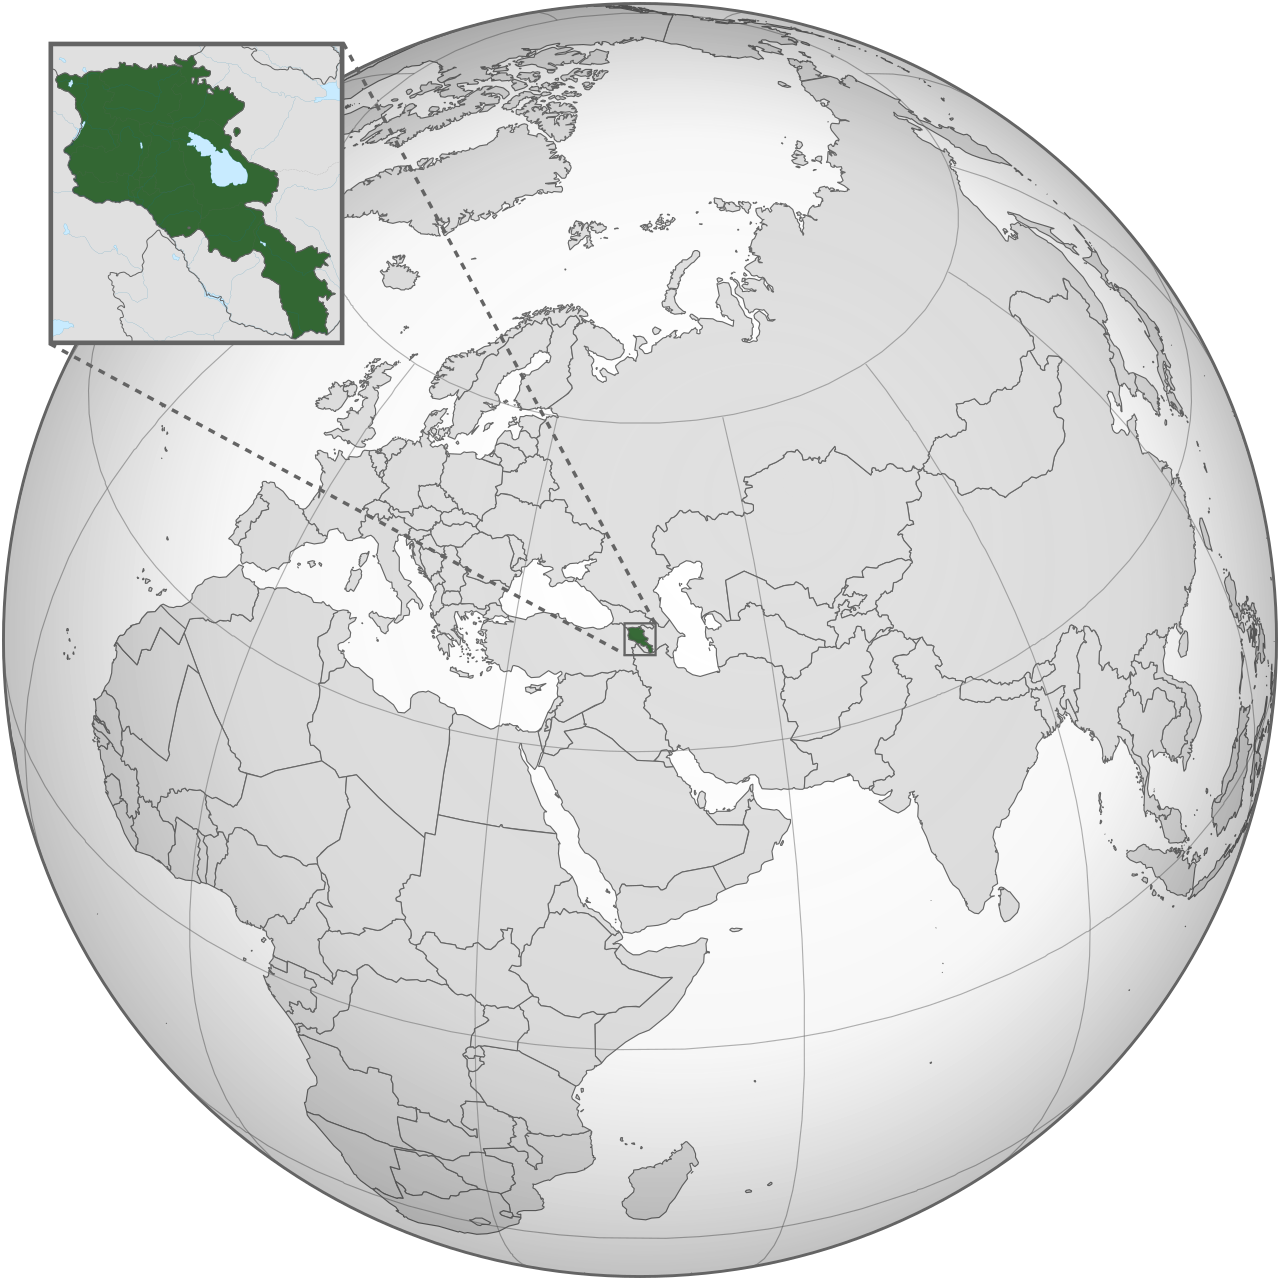 Armenia_(orthographic_projection).png